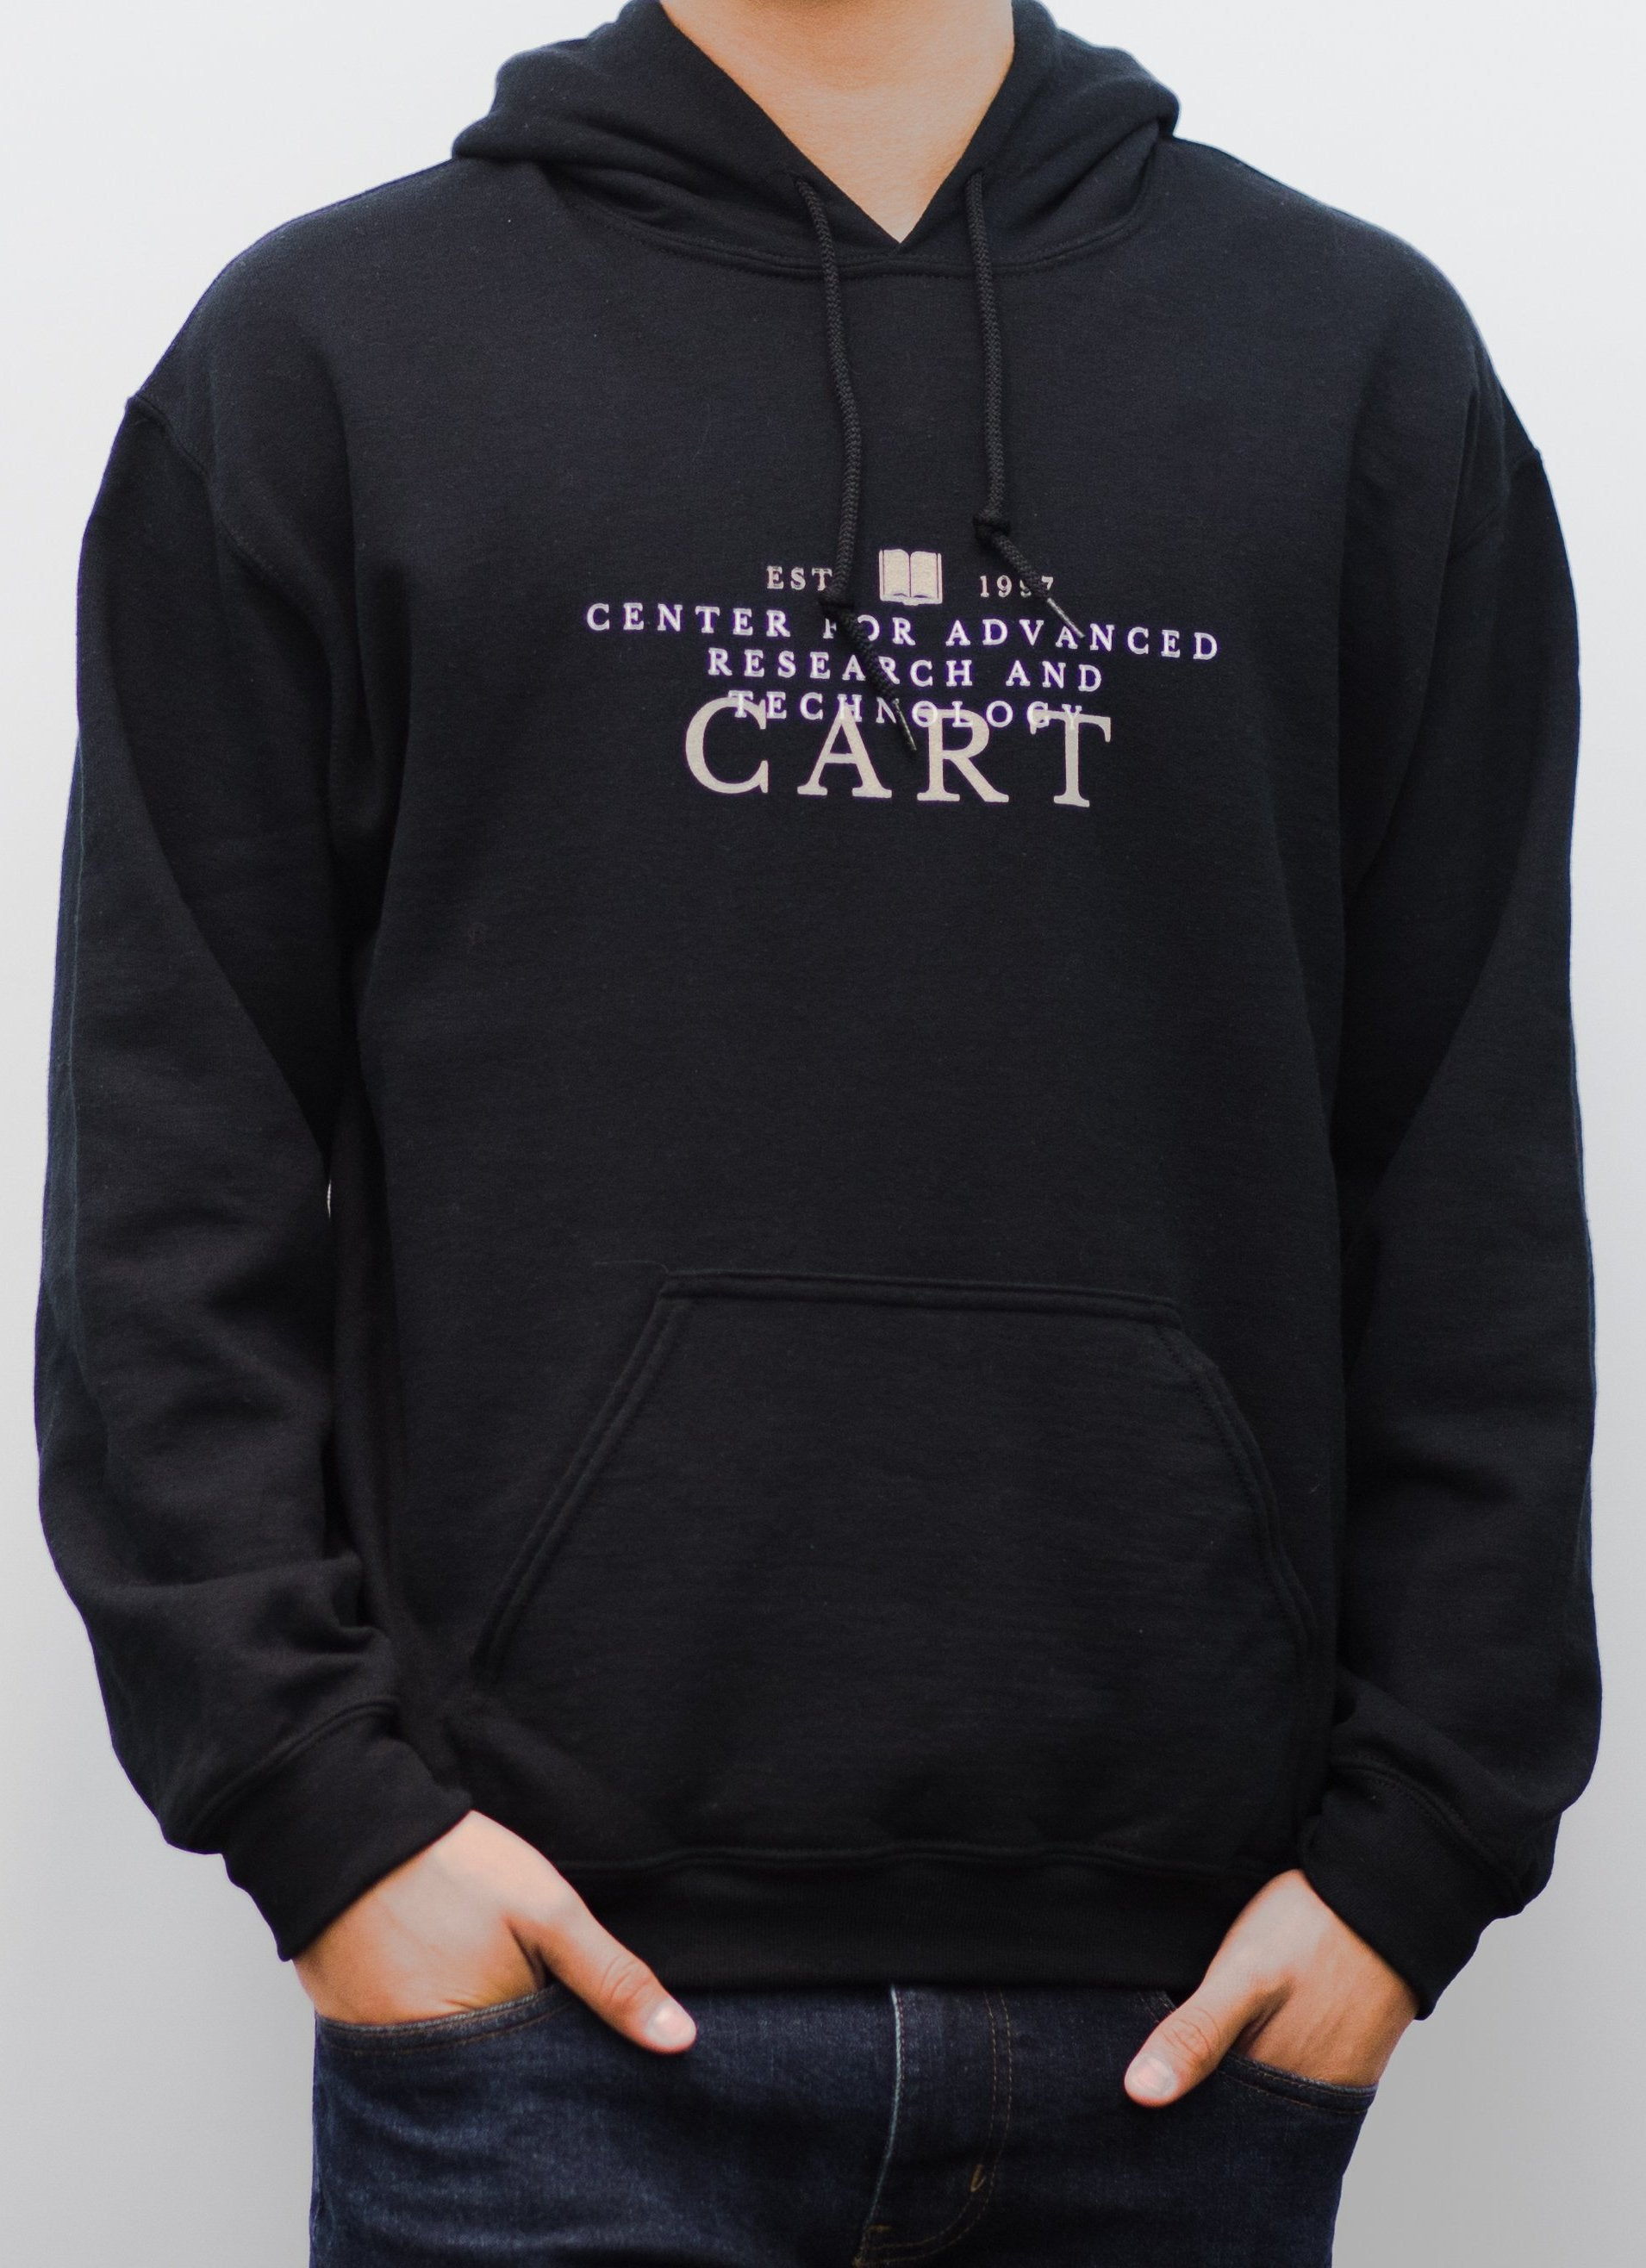 CART Collegiate Hooded Sweatshirt - Black